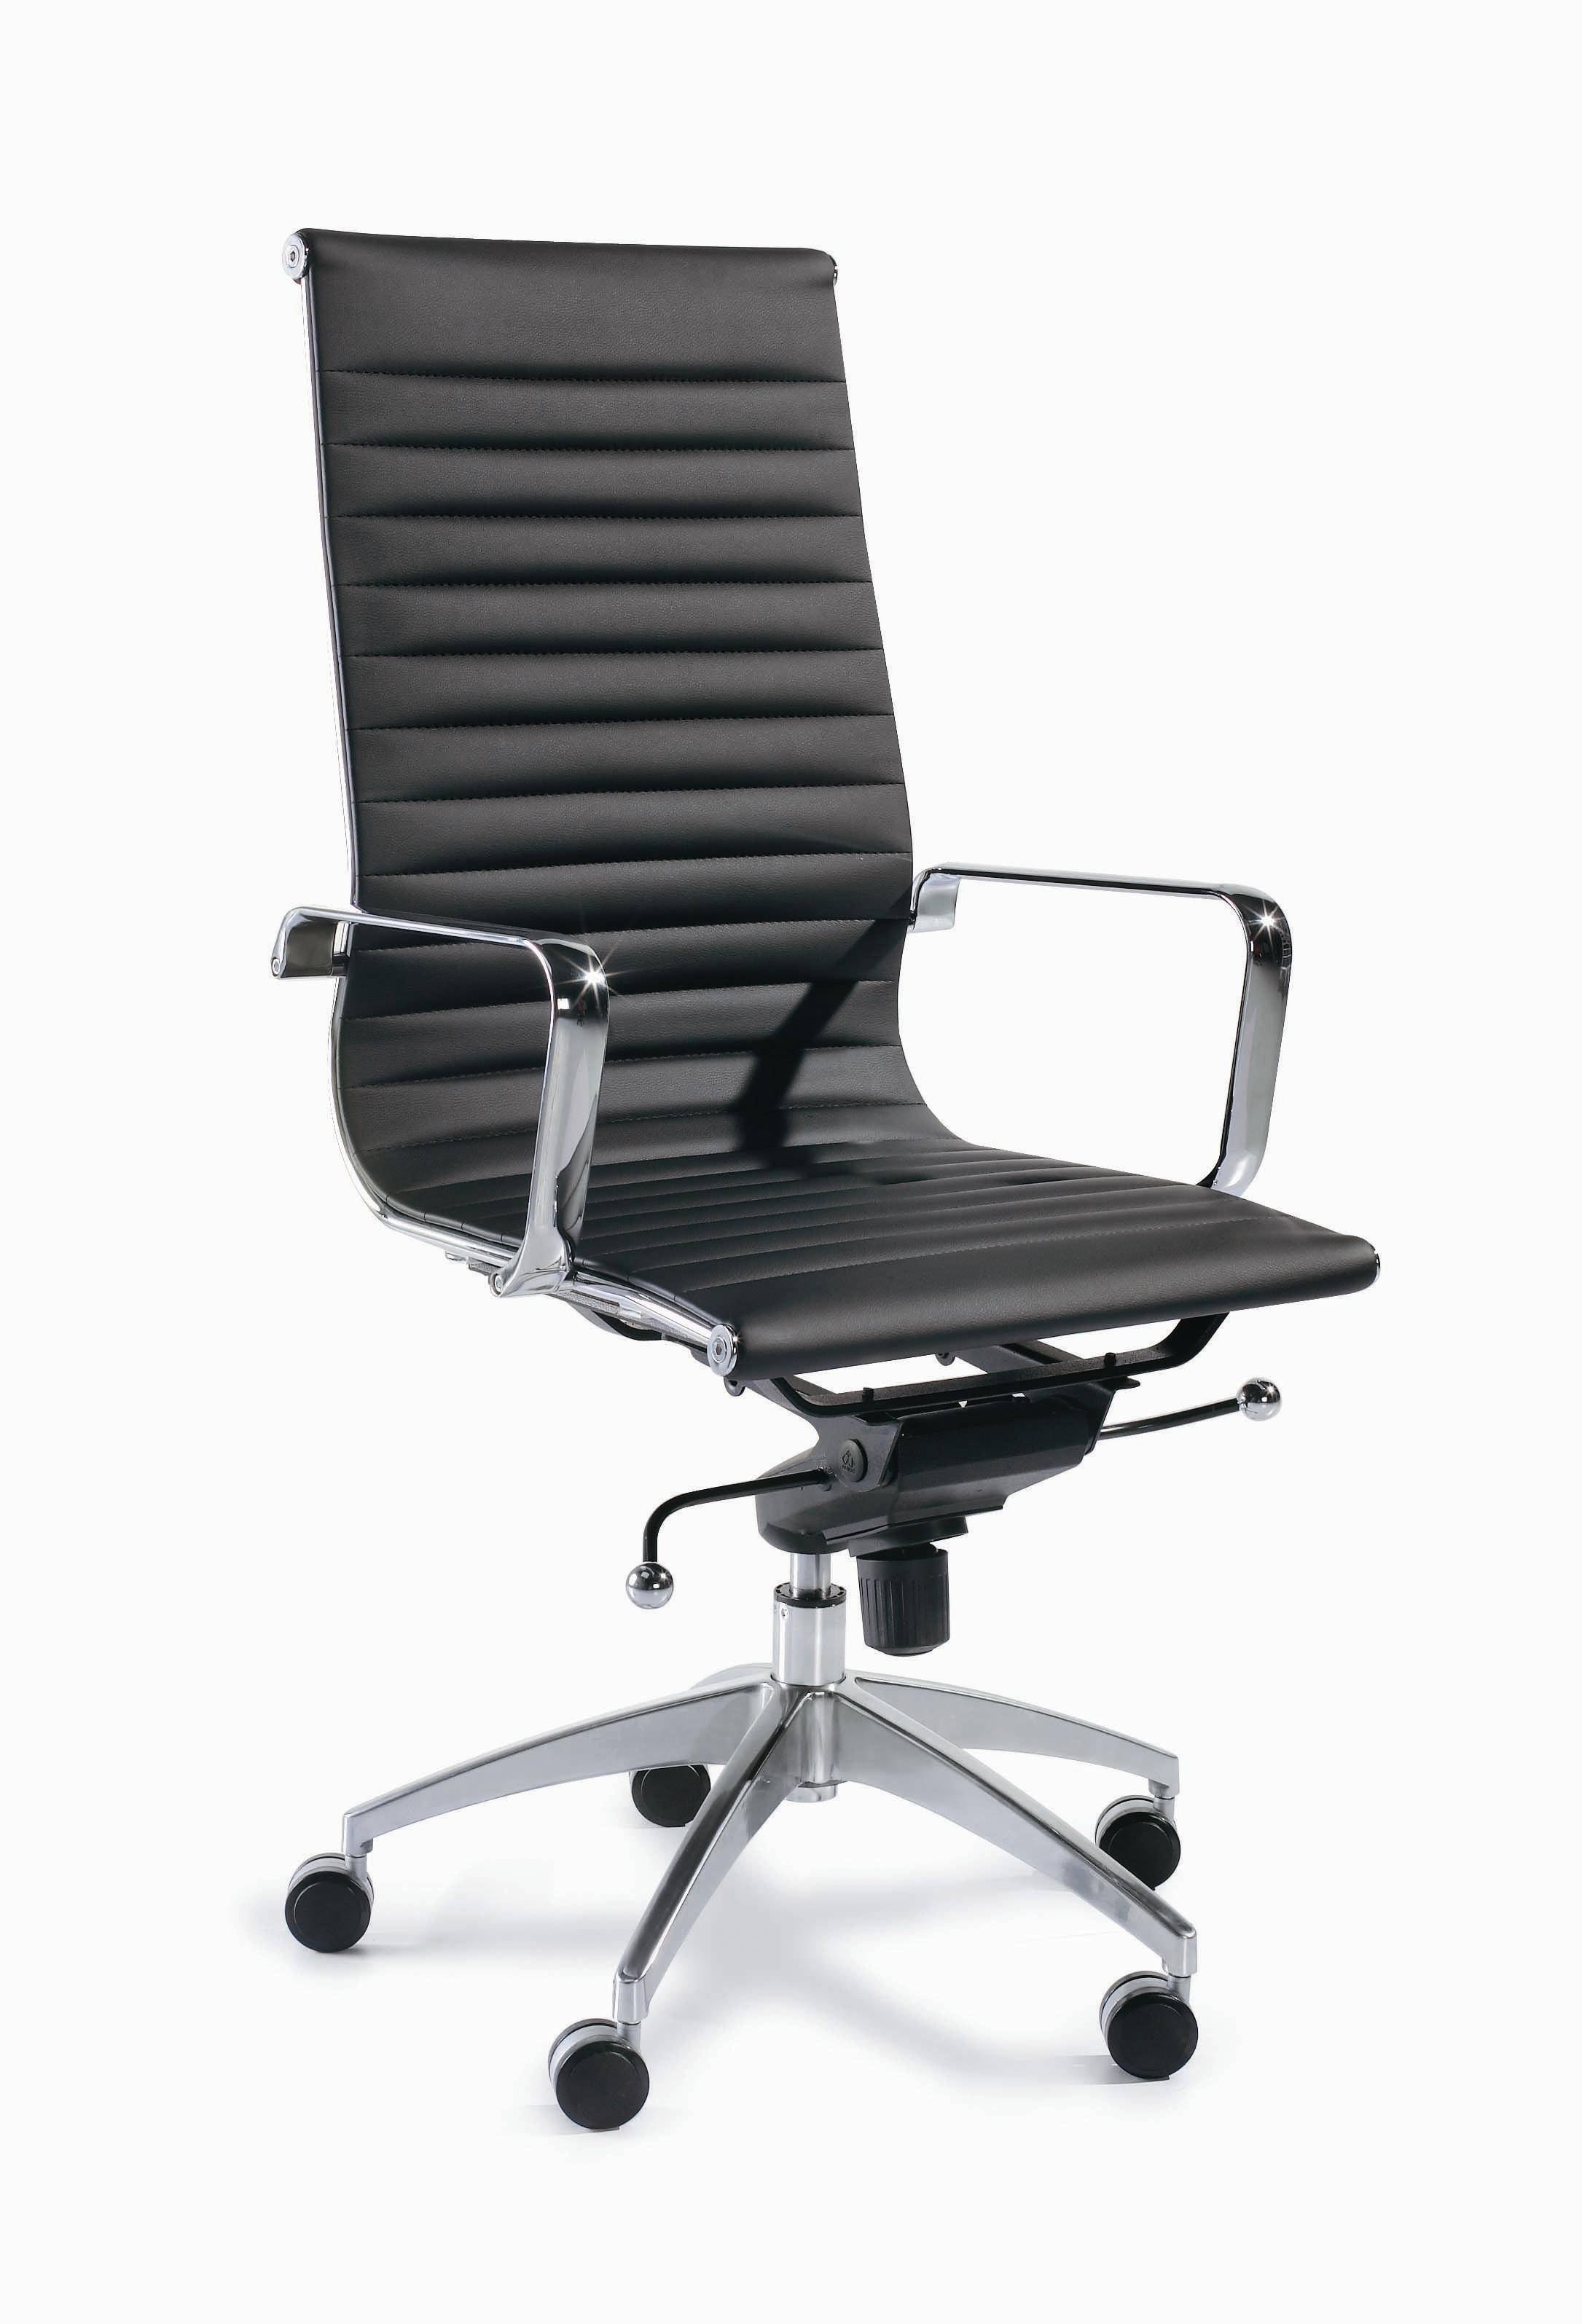 metal office chair a13 furicco office furniture co ltd